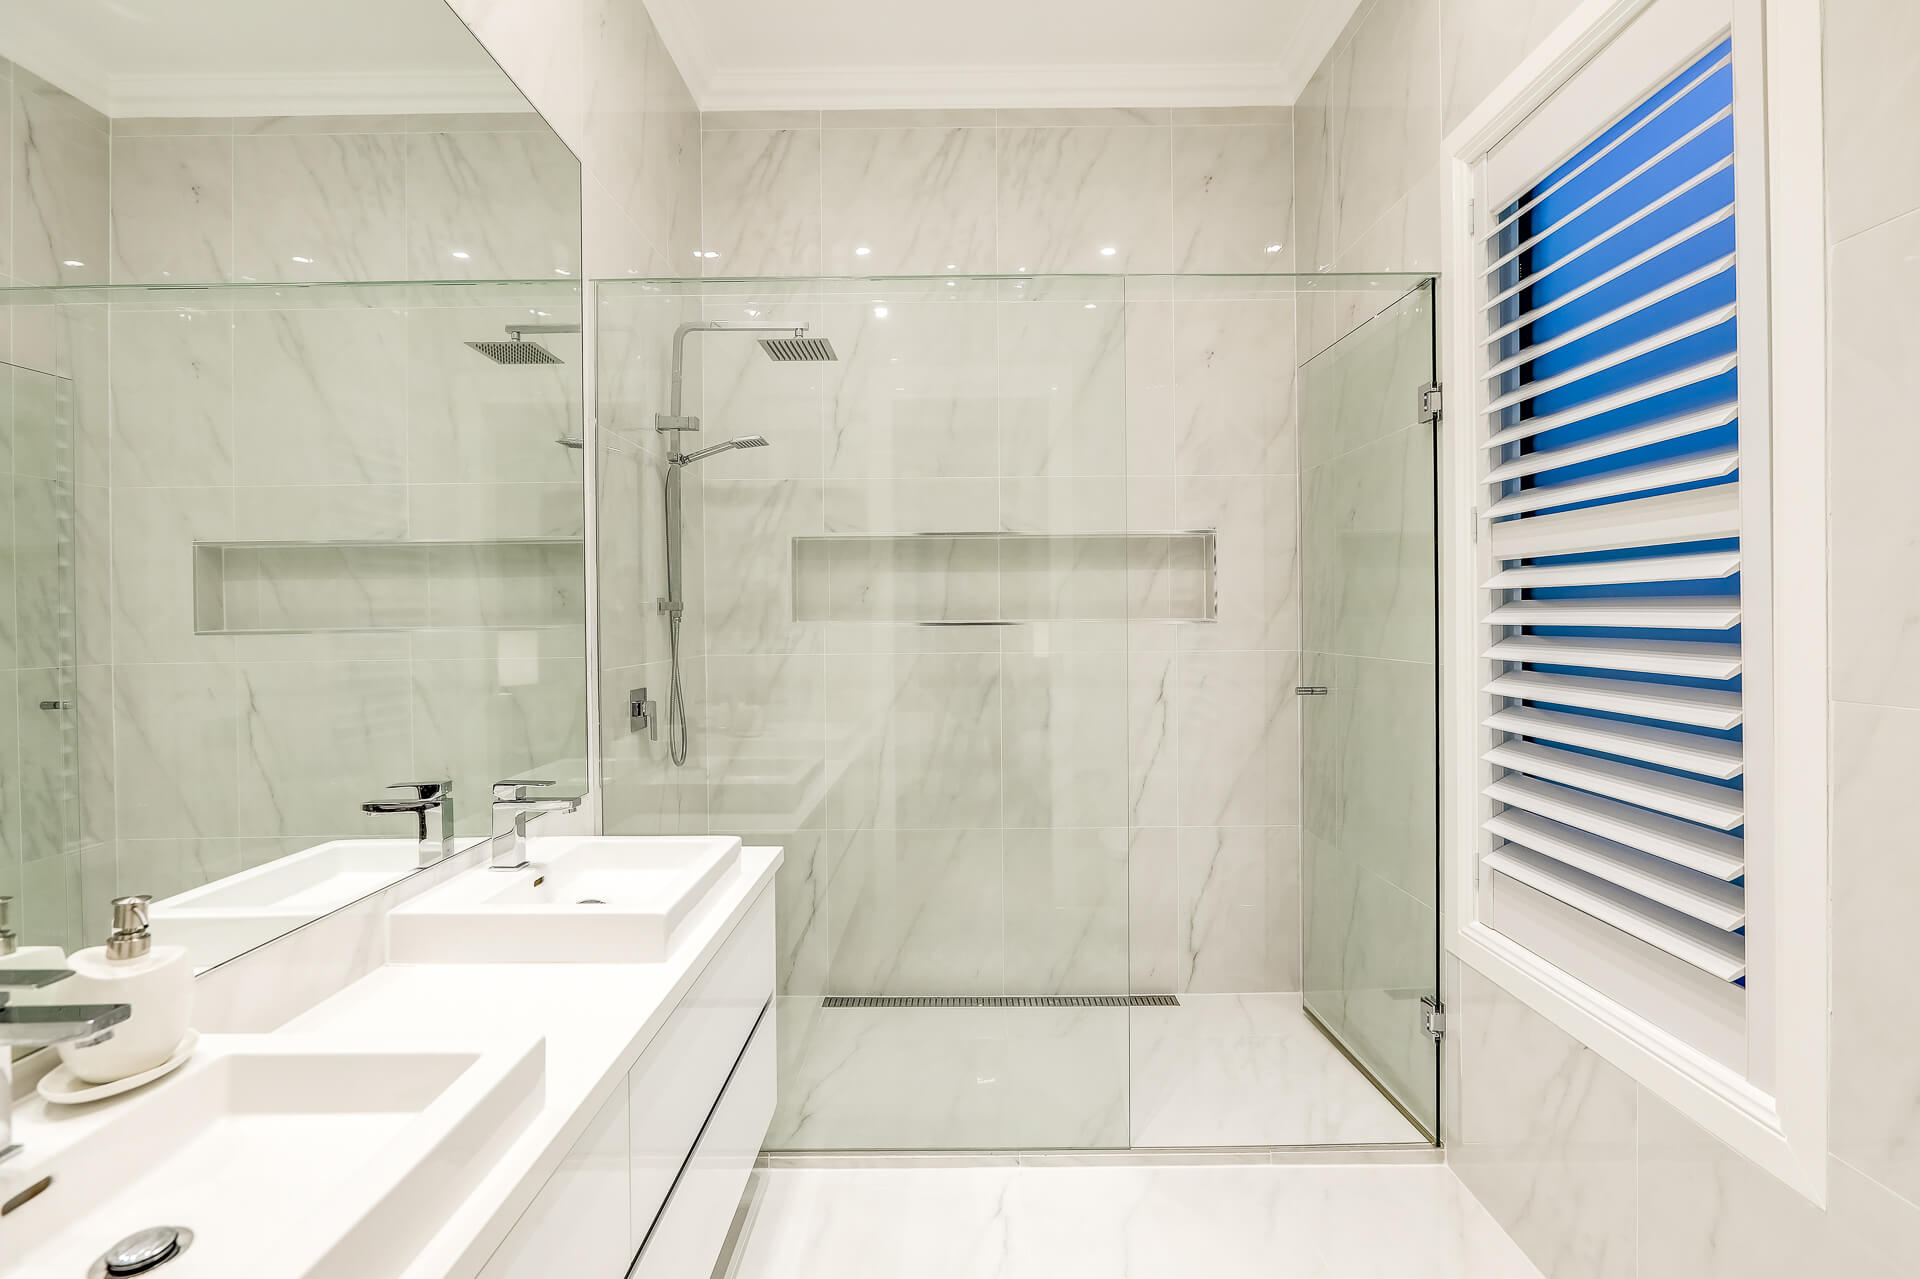 Bathroom with marbled tiles and shutters